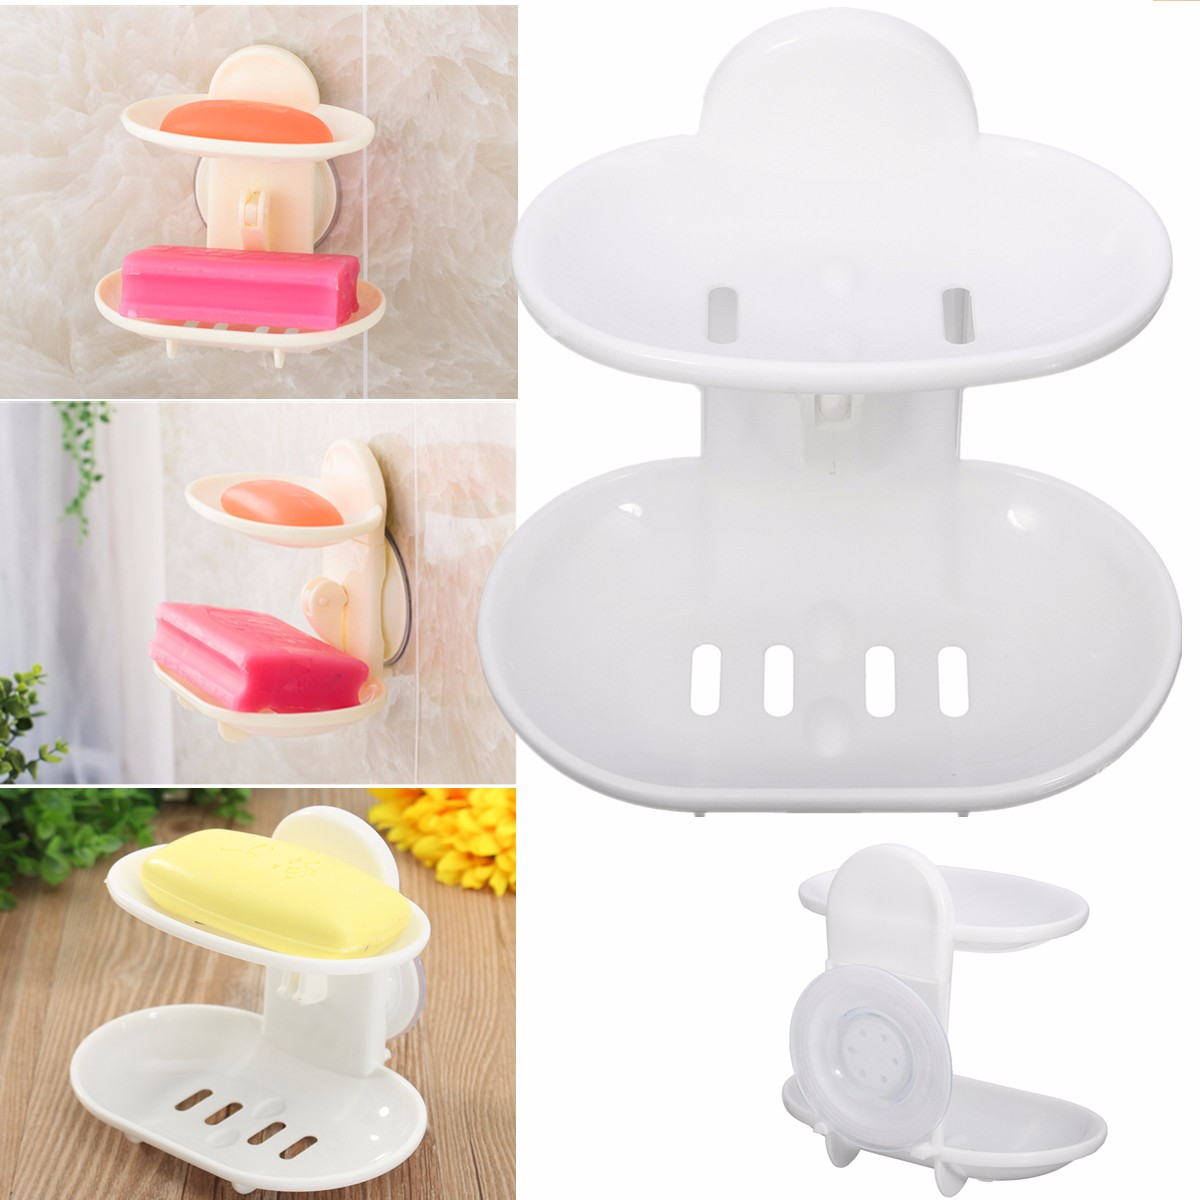 Double Layer Powerful Strong Suction Cup Bathroom Shower Soap Dishes Basket Cup Rack Container Holder Drain Plastic White for Kitchen Bathroom